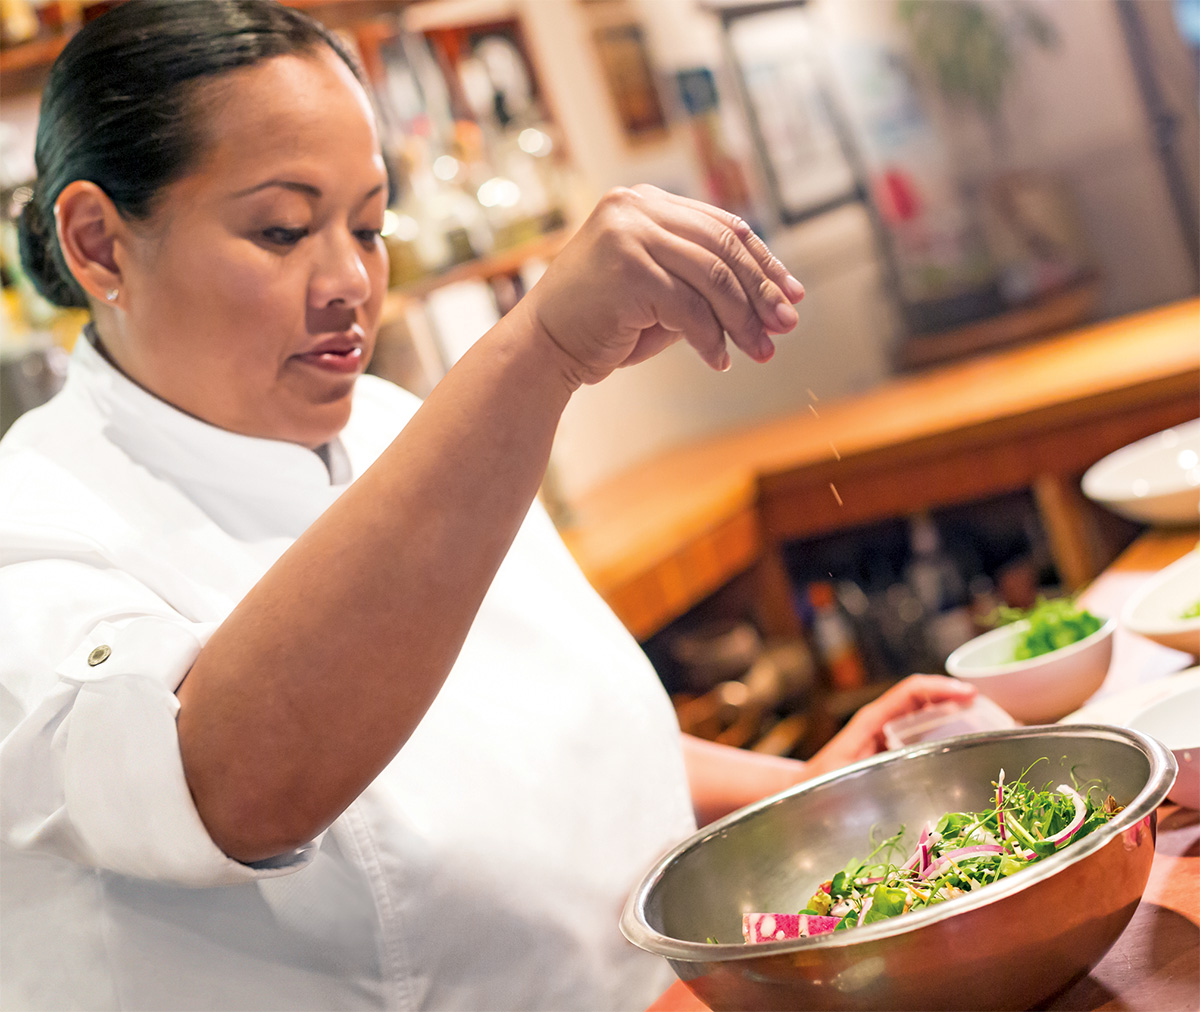 Hawaiian Airlines Executive Chef Lee Anne Wong is the chef and owner of Koko Head Cafe in Honolulu, Hawaii.